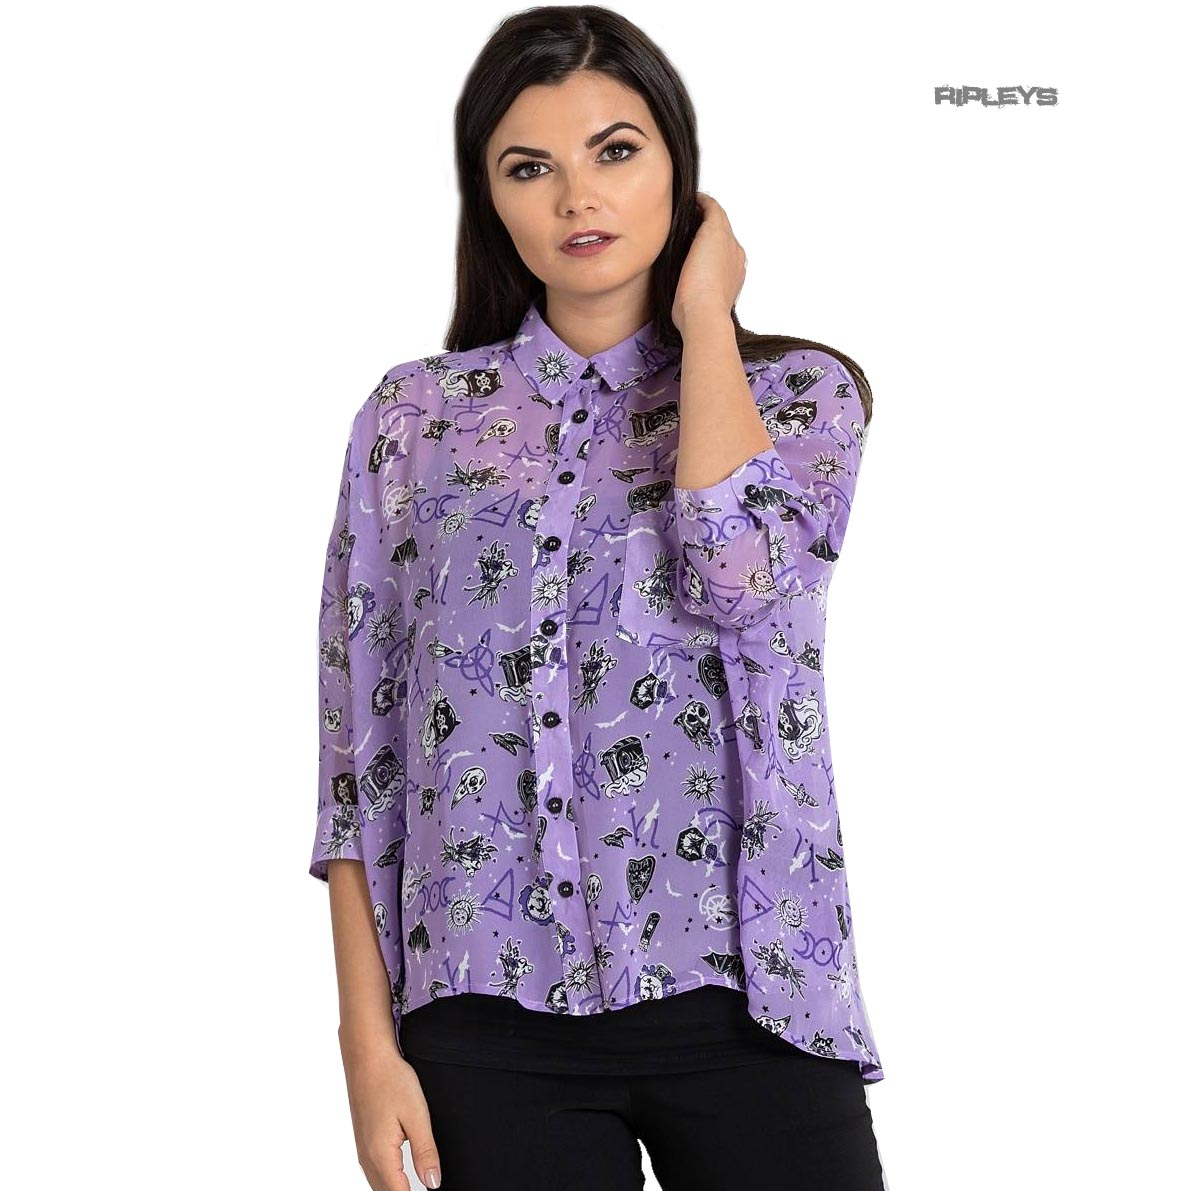 Hell-Bunny-Shirt-Top-Gothic-Witchy-ELSPETH-Lavender-Purple-Blouse-All-Sizes thumbnail 14